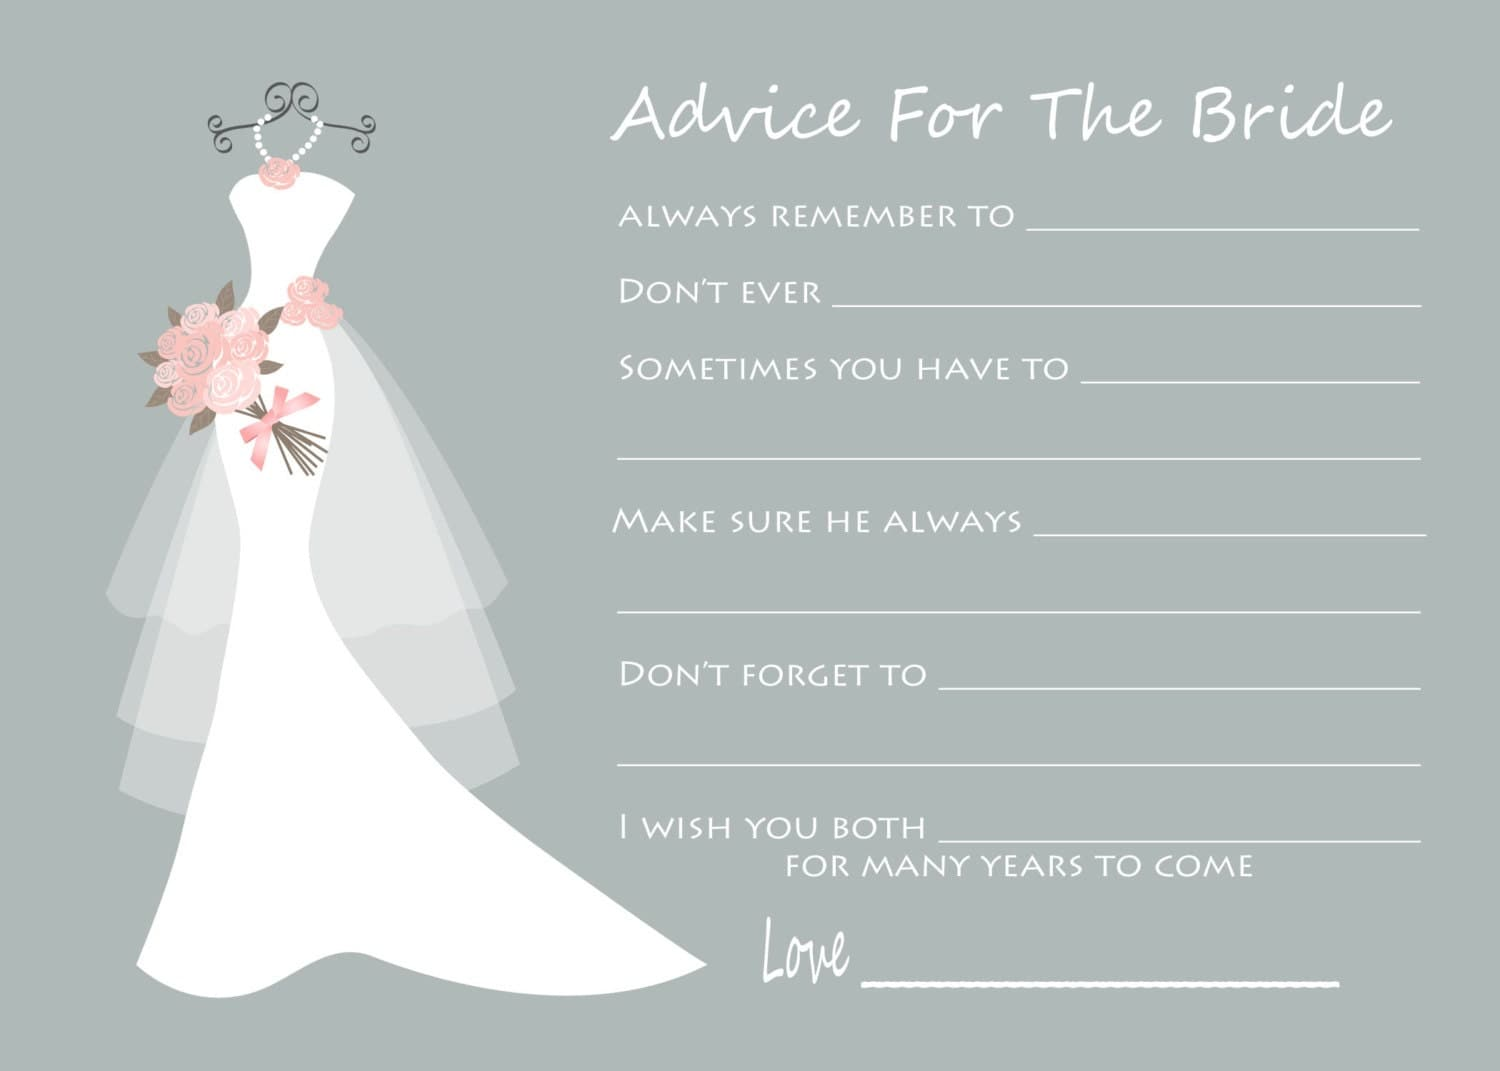 Advice For The Bride Wedding Advice Cards Bridal Shower